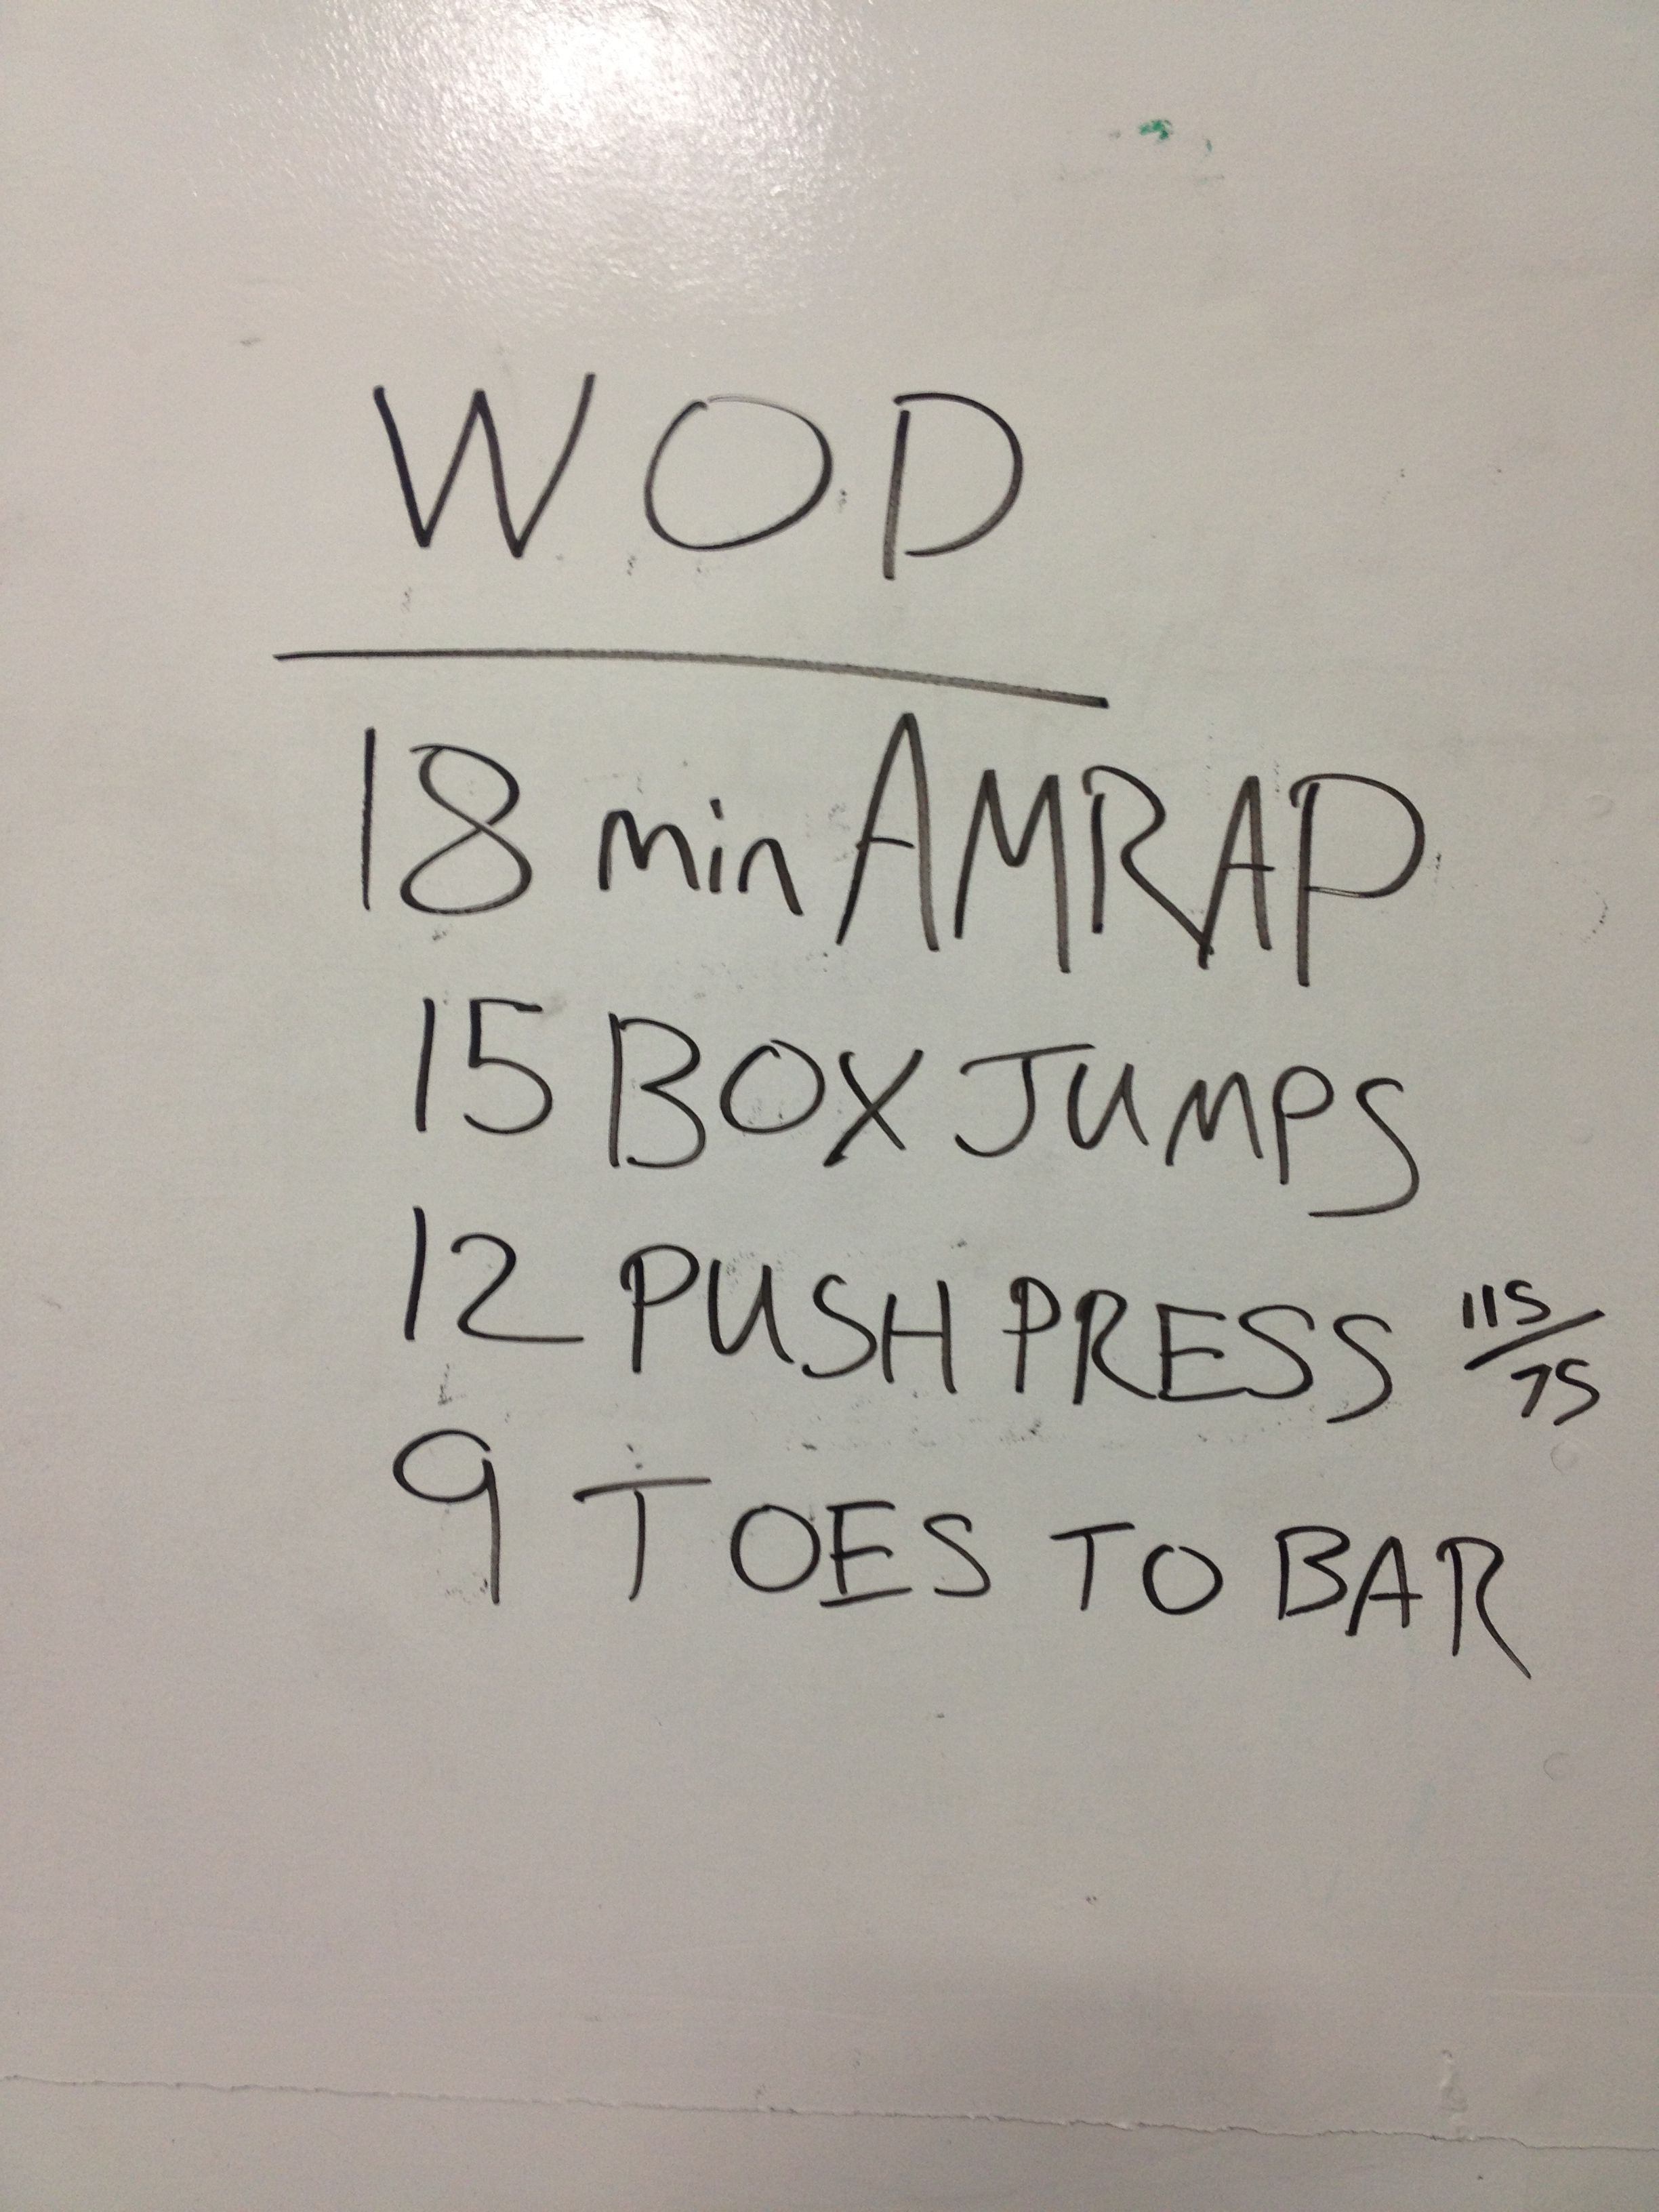 WOD - 20 in / 24 in box jumps